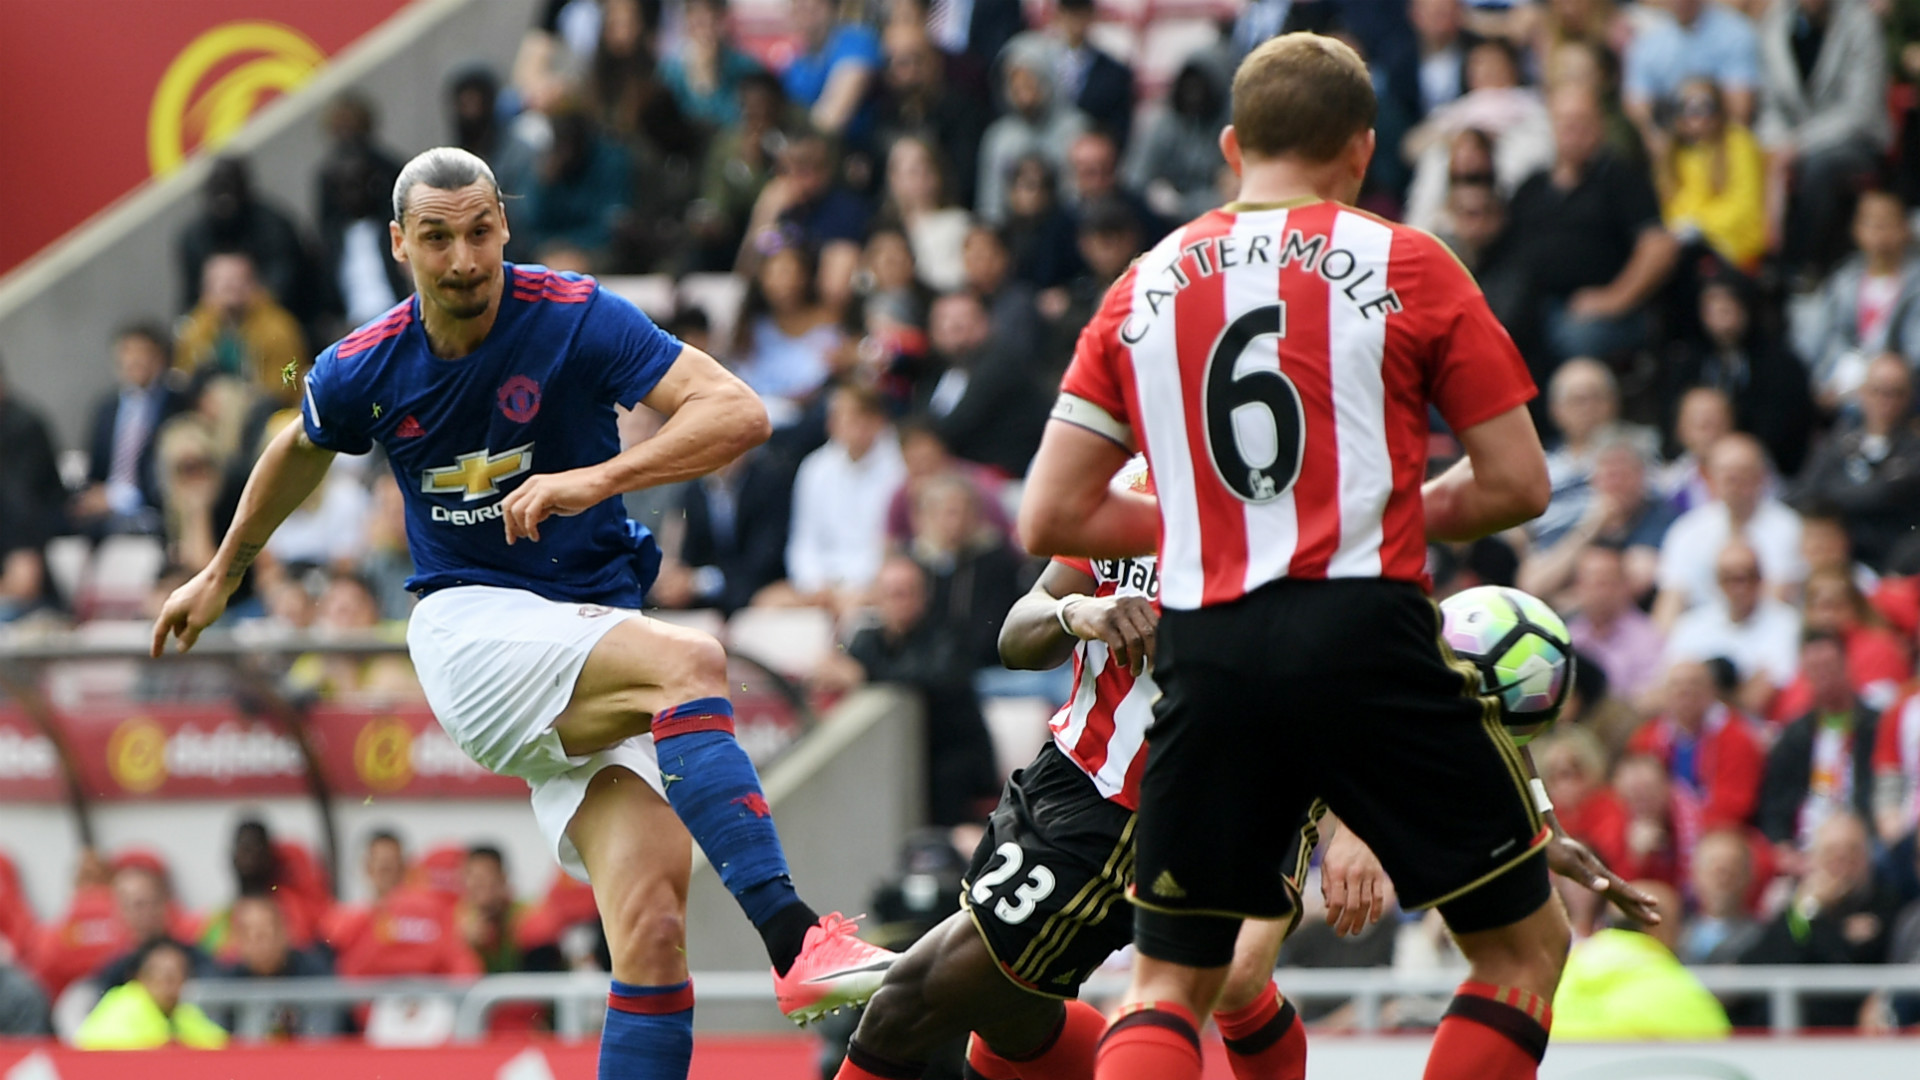 Manchester United-Everton, sfogo di Ibra nel post partita: